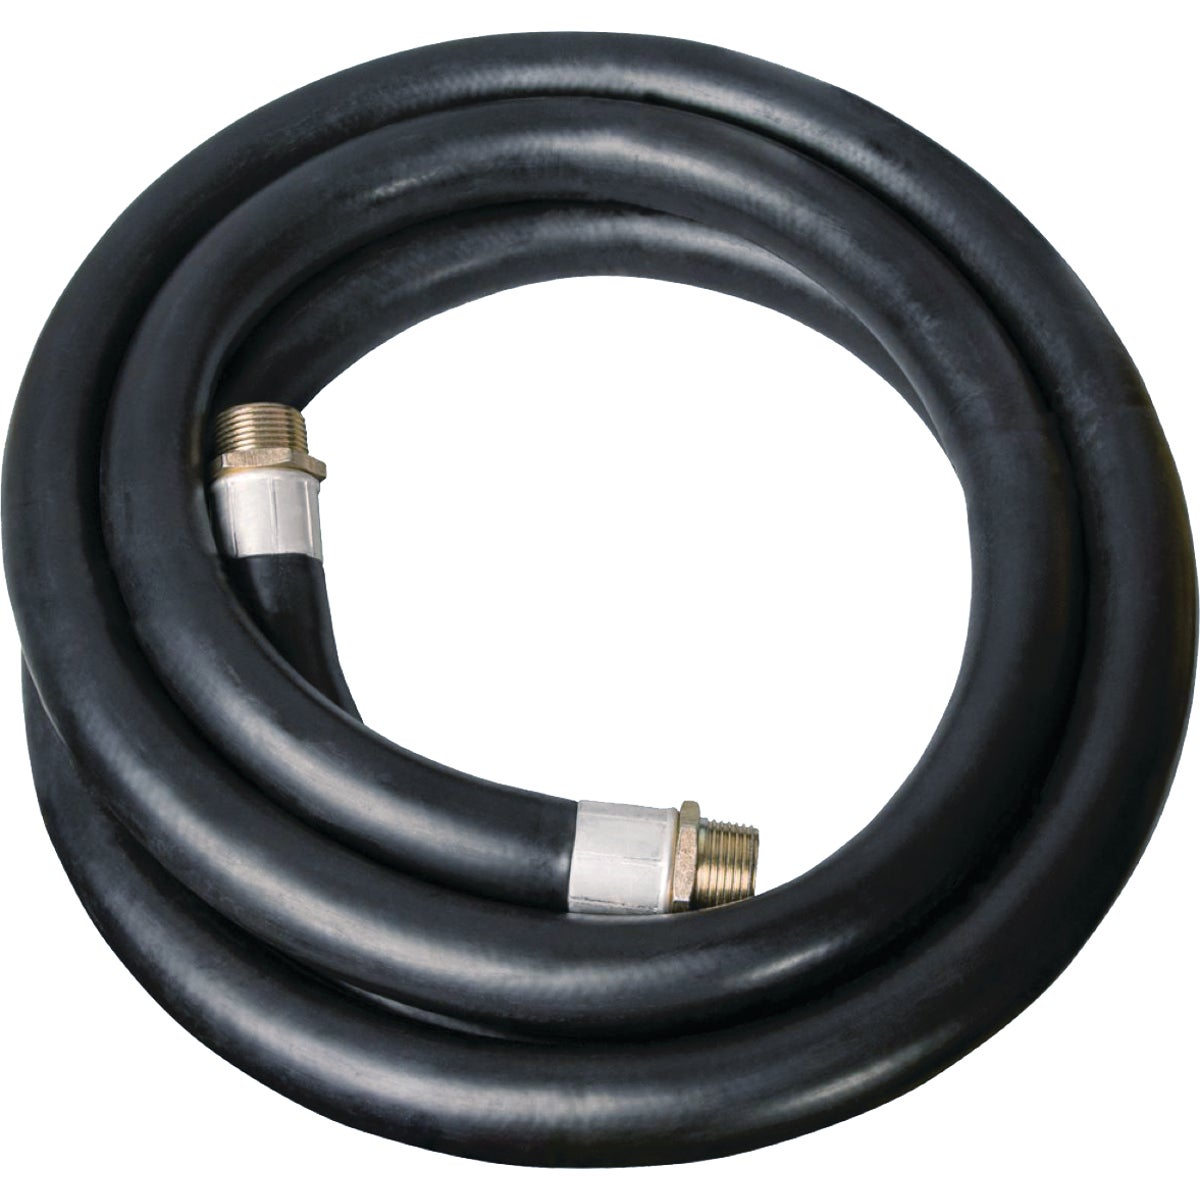 10' FUEL TRANSFER HOSE - 98108450 by Apache Hose Belting